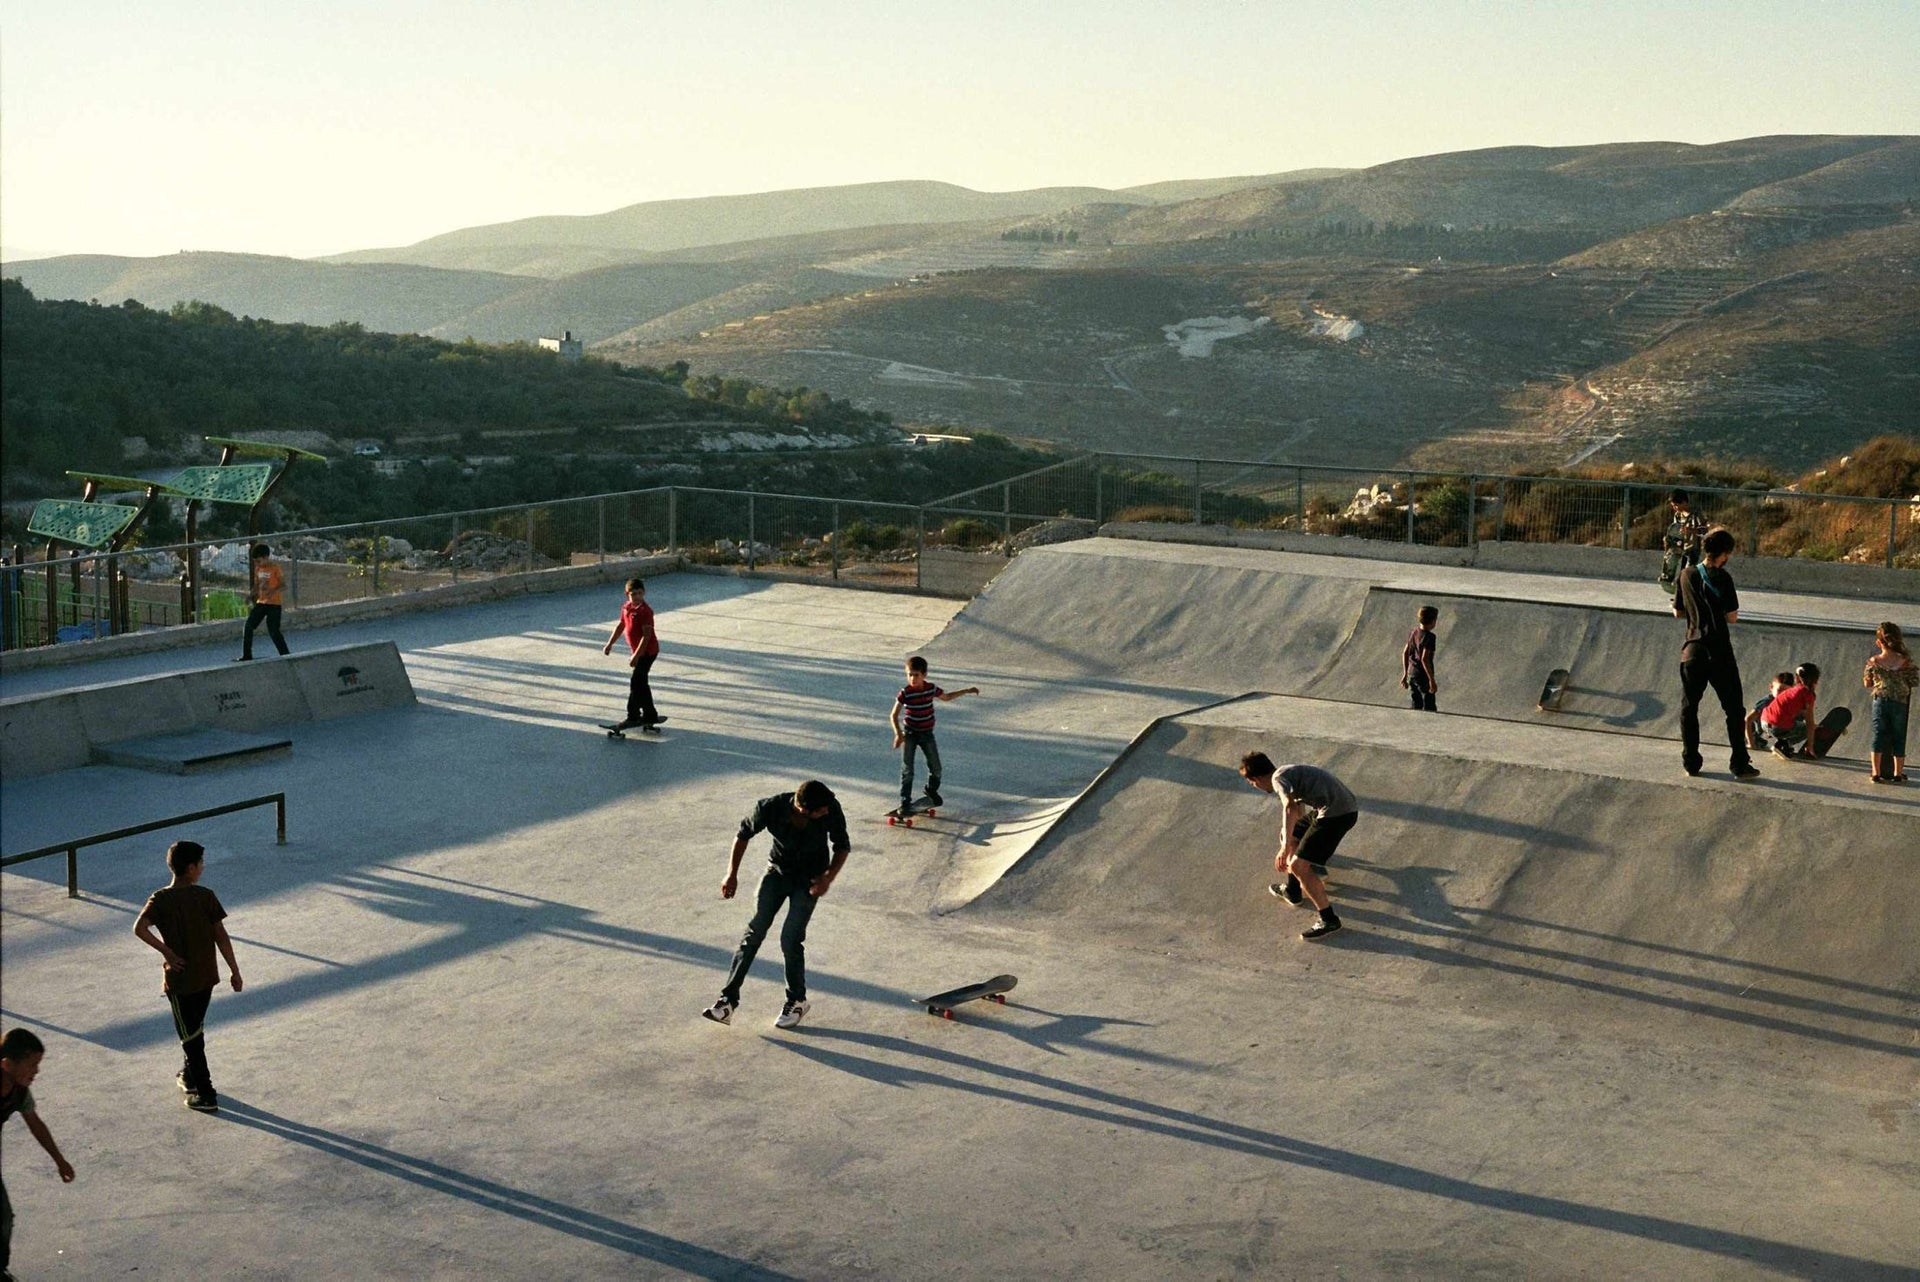 Skateboarders in Asira. A new language.